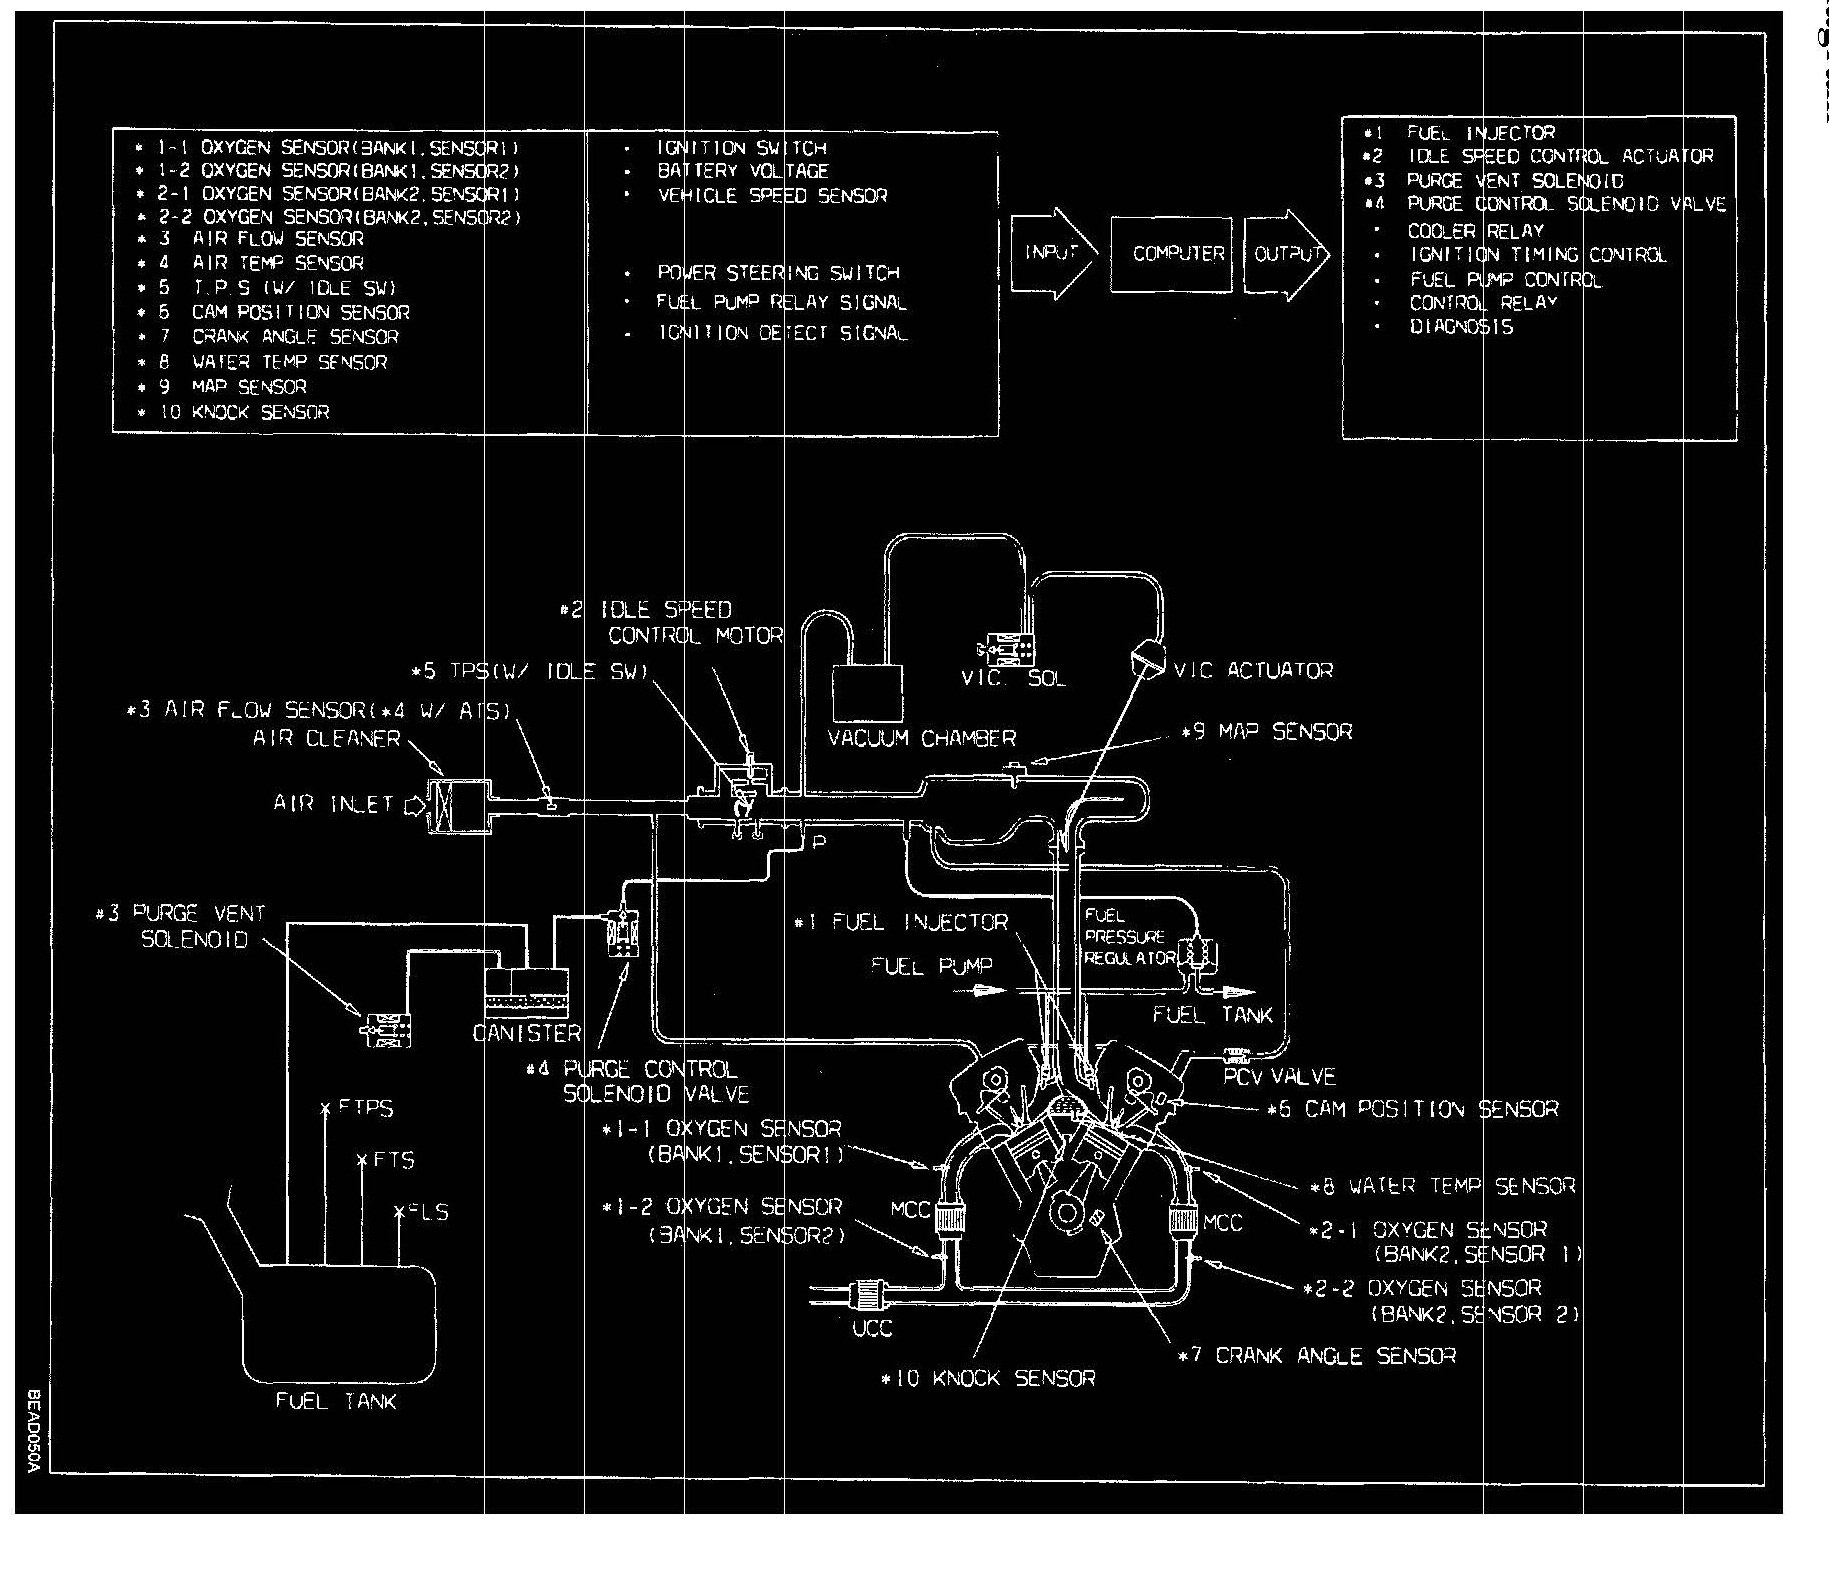 2005 Kia Sorento Cooling Parts Diagram Wiring Schematic General Wiring Diagram Engineer Engineer Justrollingwith It